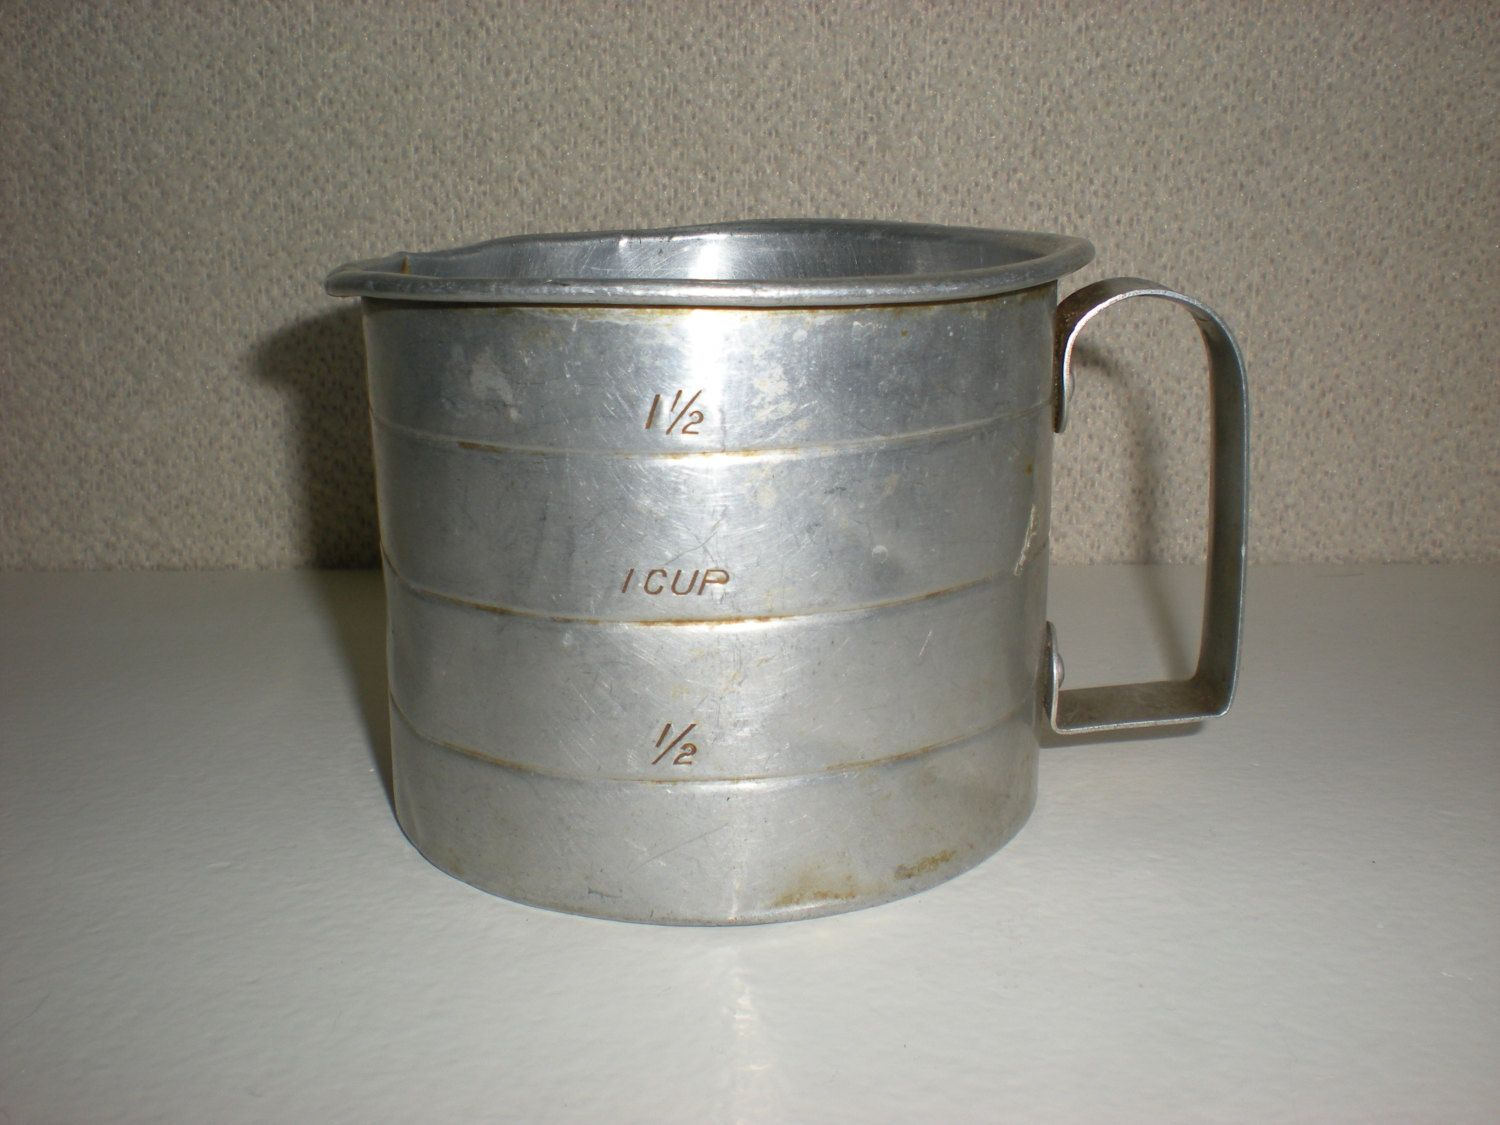 Vintage Measuring Cup 2 Cups Old Tin Aluminum Metal